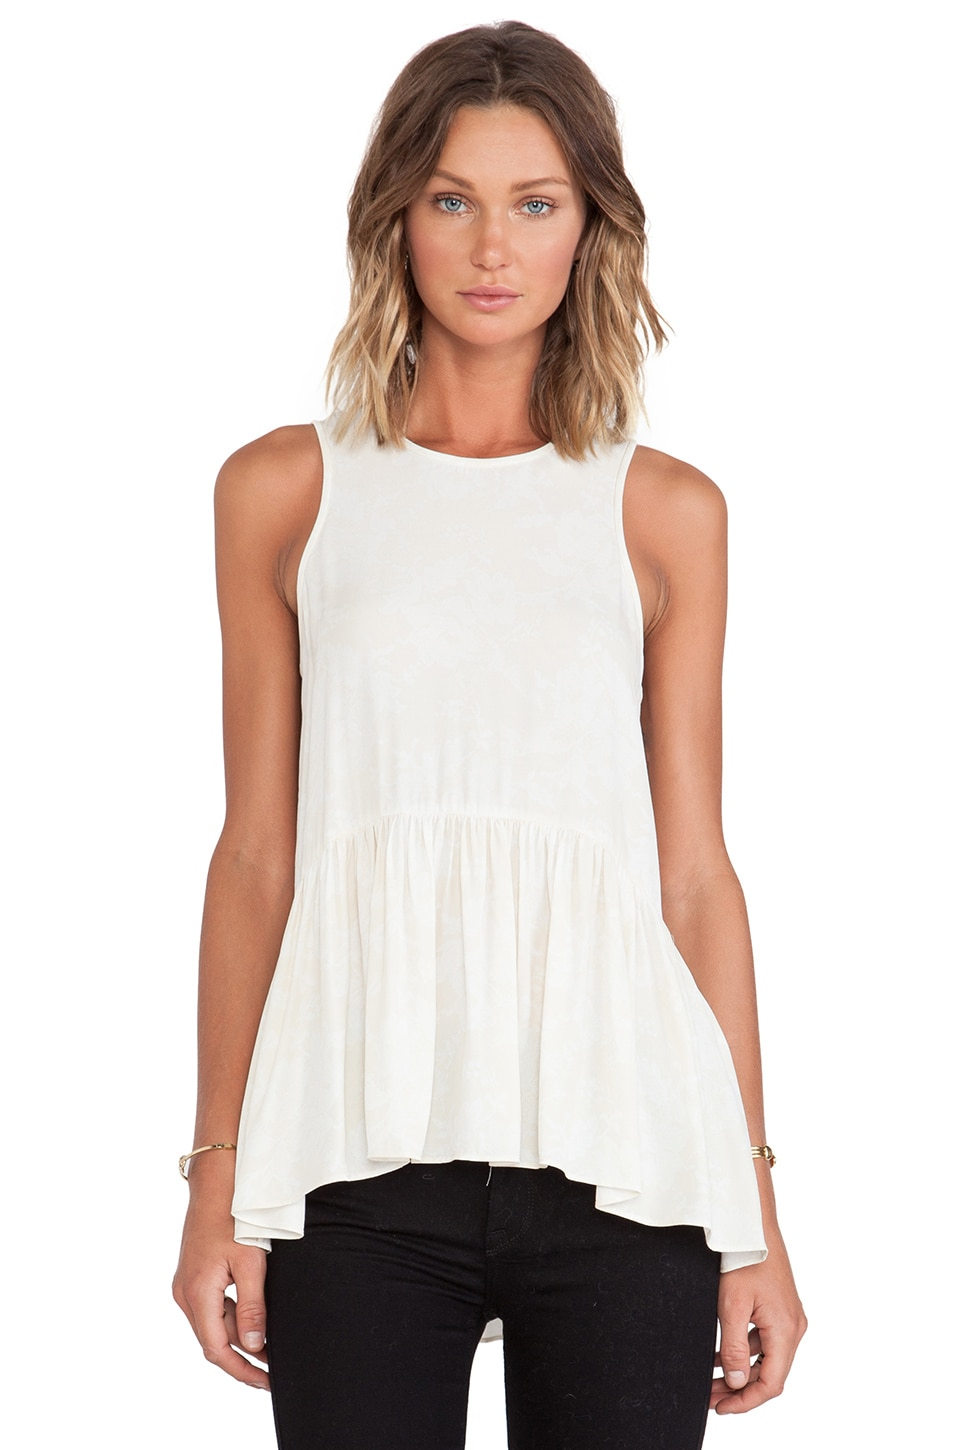 Tibi Tapestry Print Racerback Top in Cream Multi